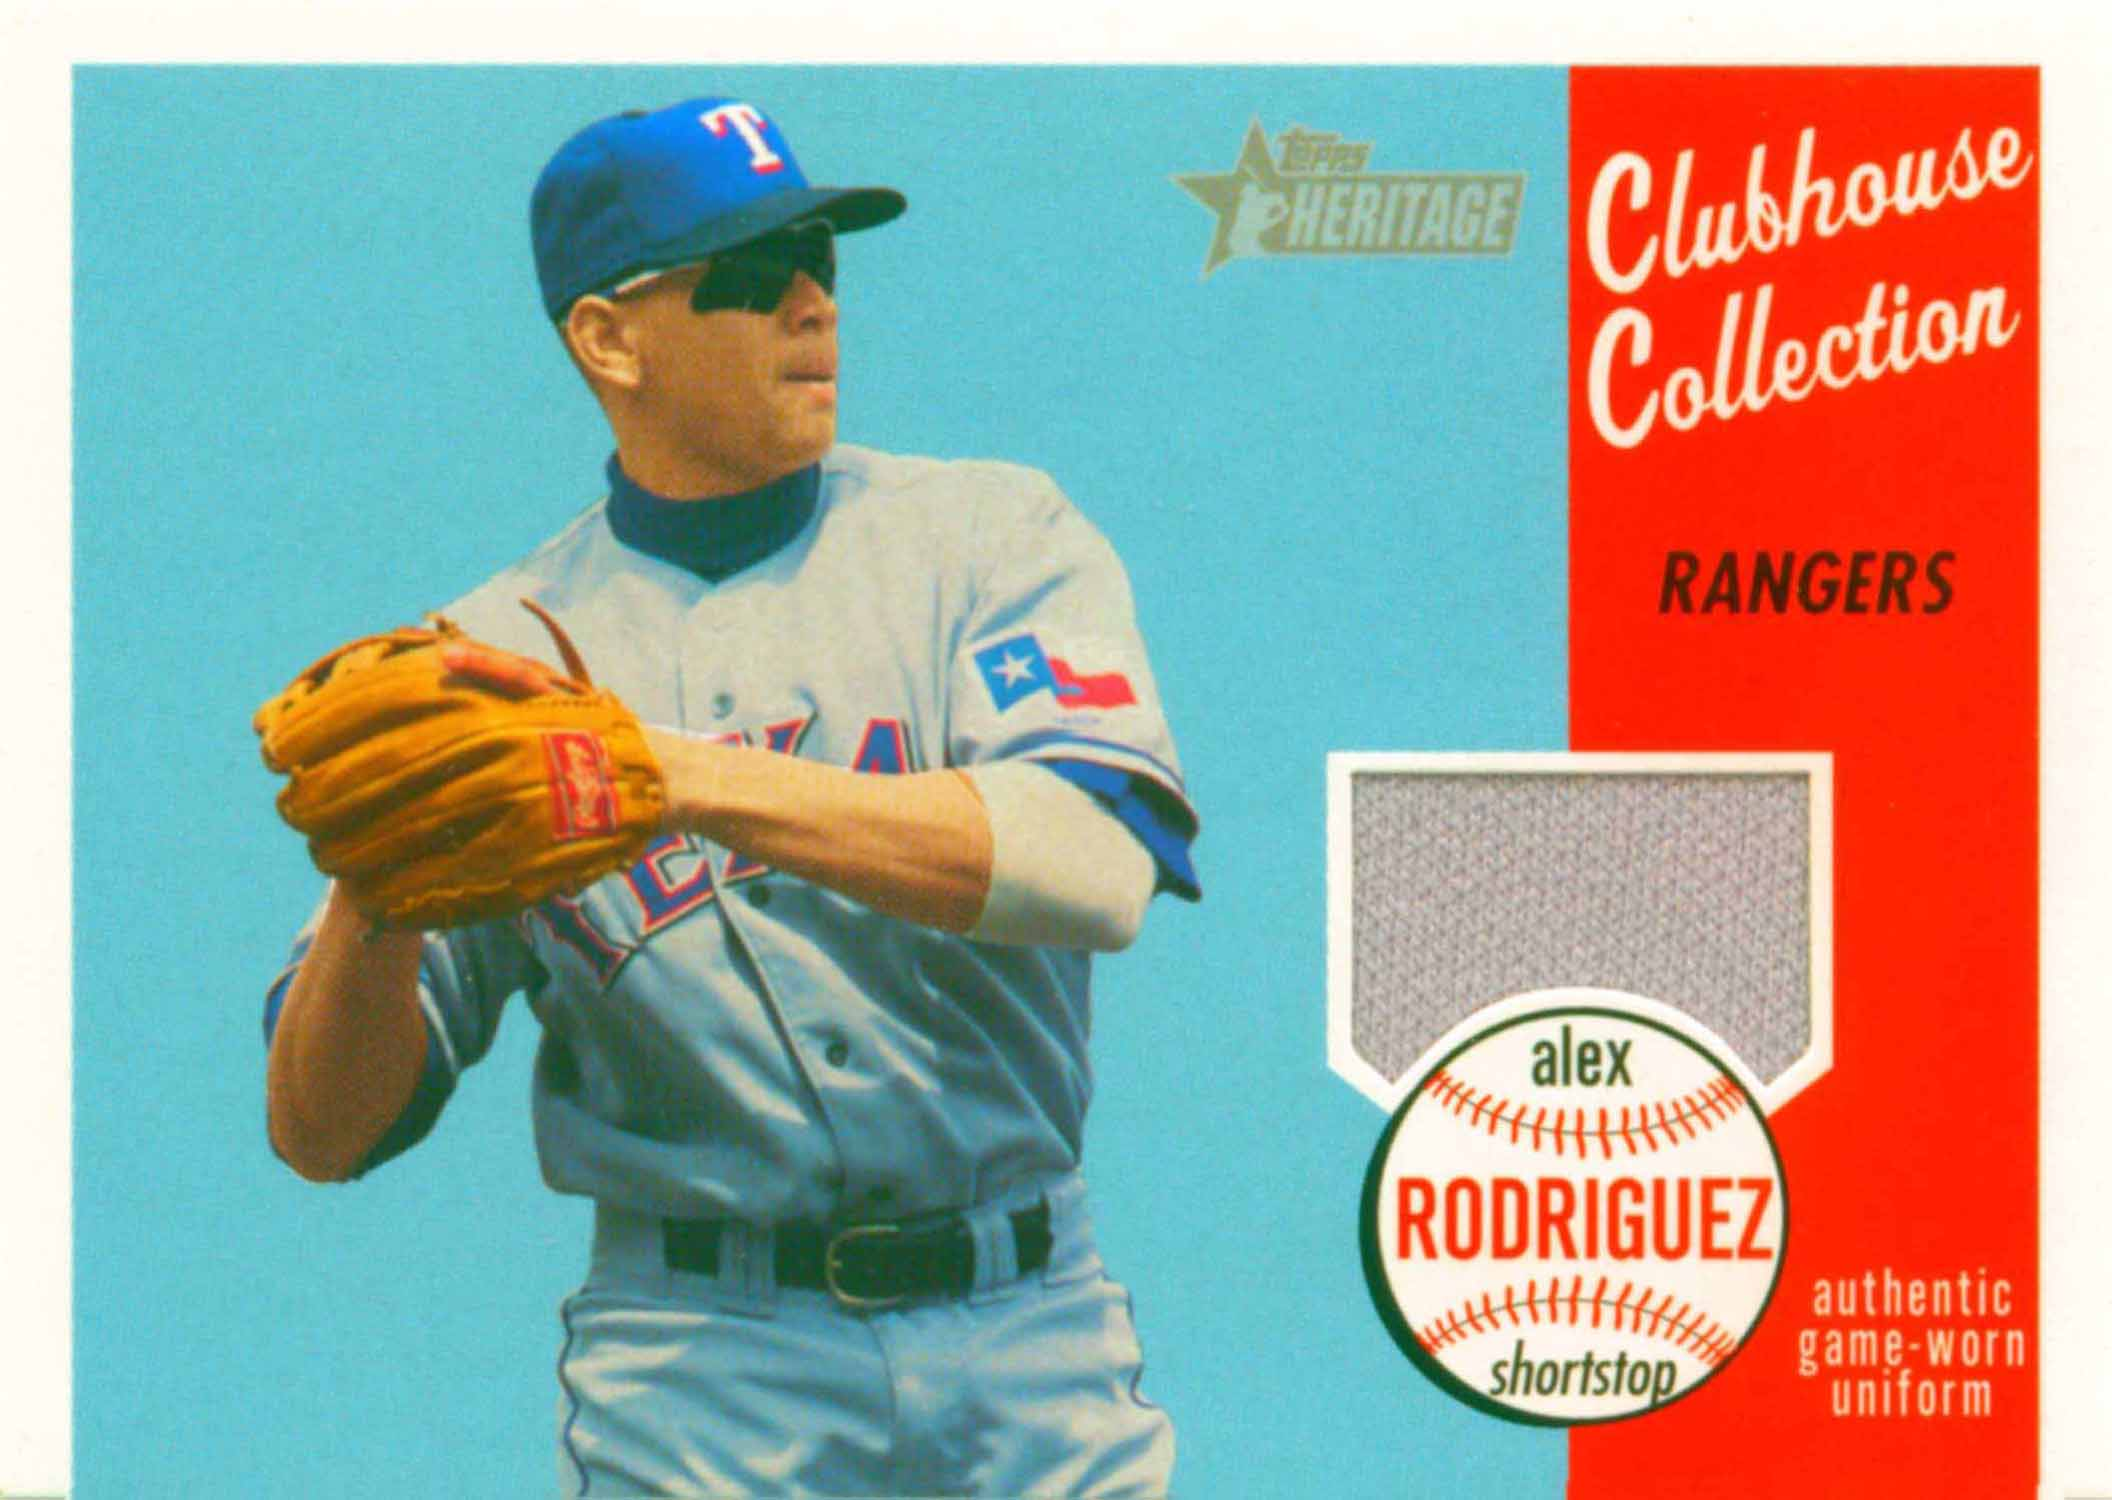 2003 Topps Heritage Clubhouse Collection Relics Uniform